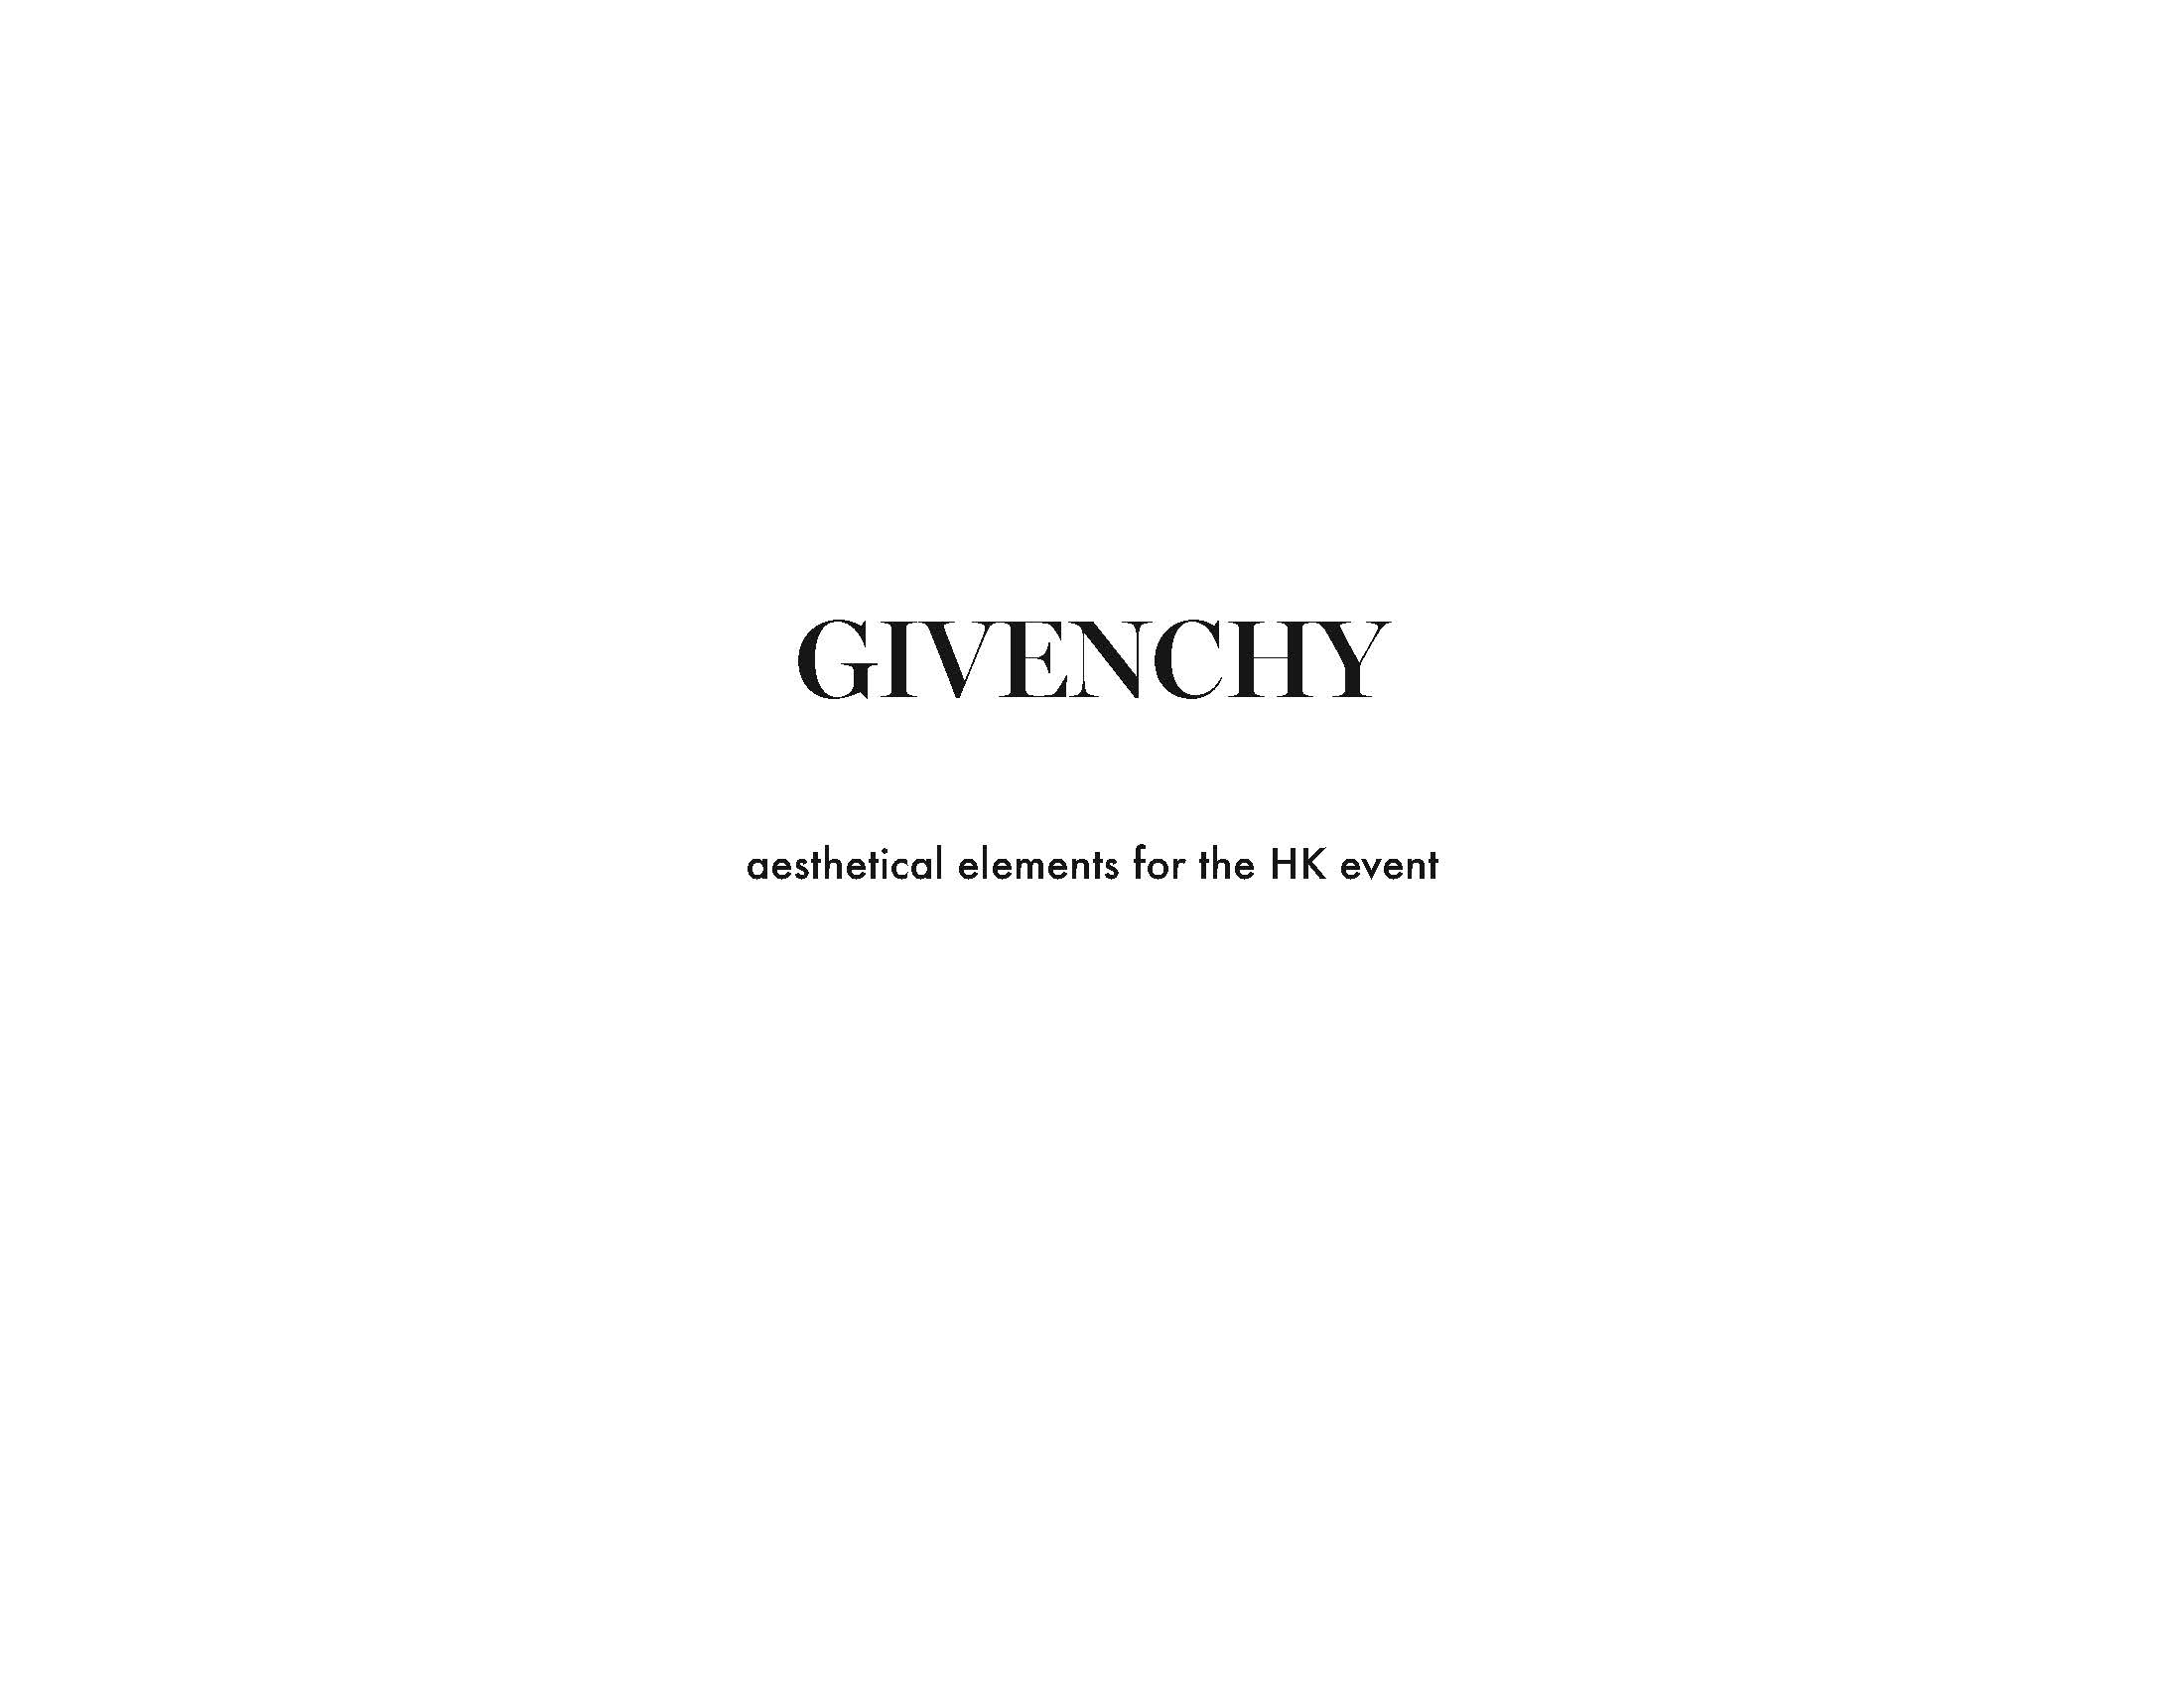 Givenchy aesthetical elements RESUME_Page_01.jpg